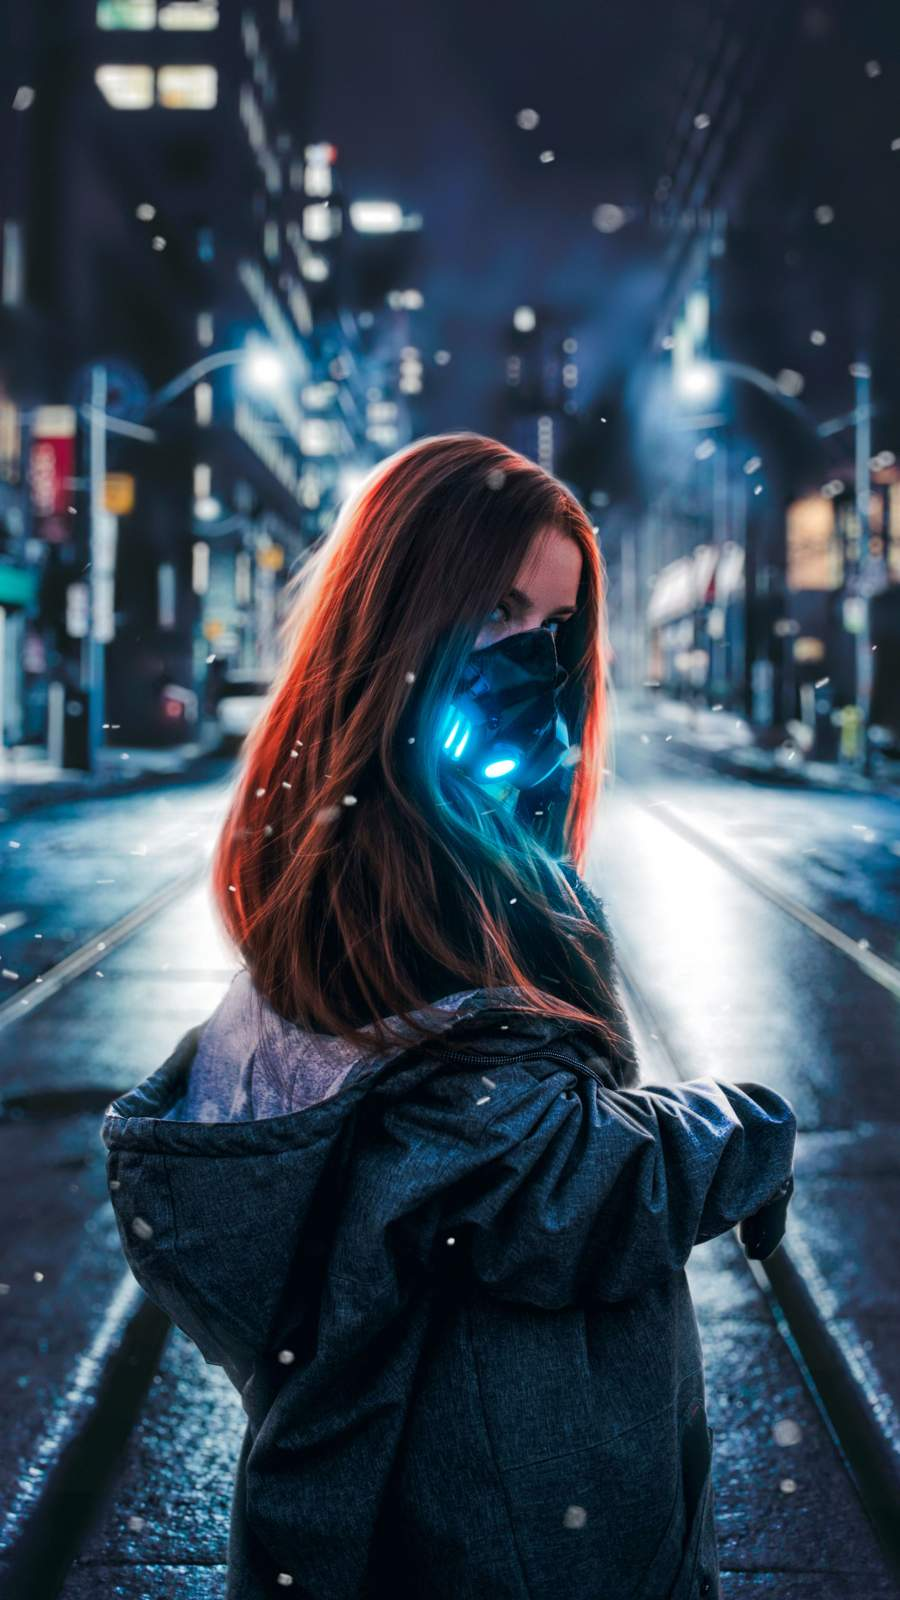 Night Mask Girl iPhone Wallpaper